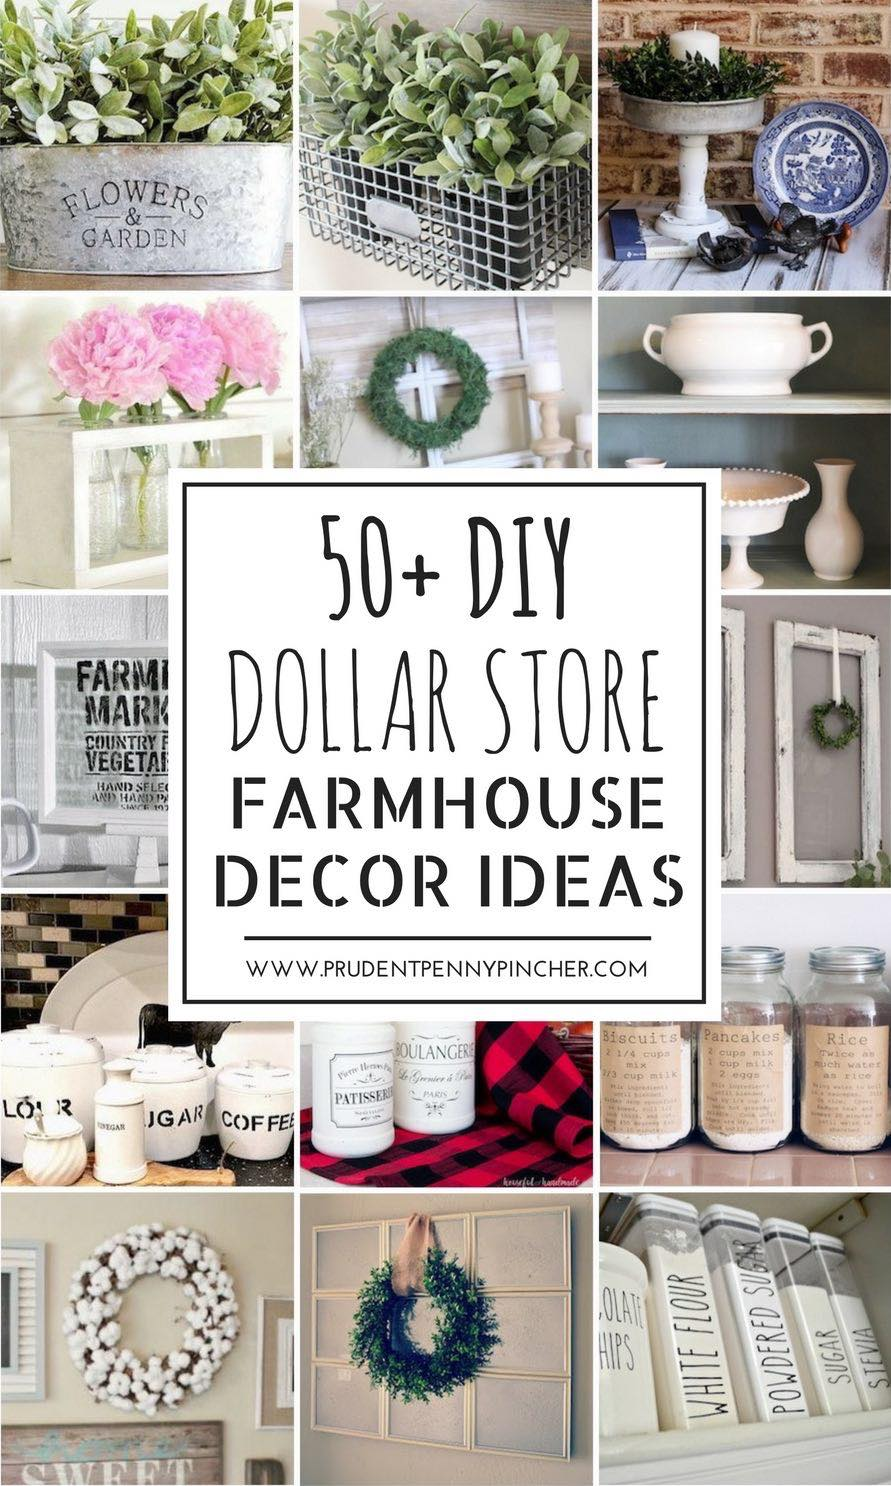 decor and design savvy decor and design ideas under 50 diy ideas for your home Get the farmhouse look for less with these 50 DIY farmhouse decor ideas so  that you can give your home some farmhouse charm without breaking the bank  or ...